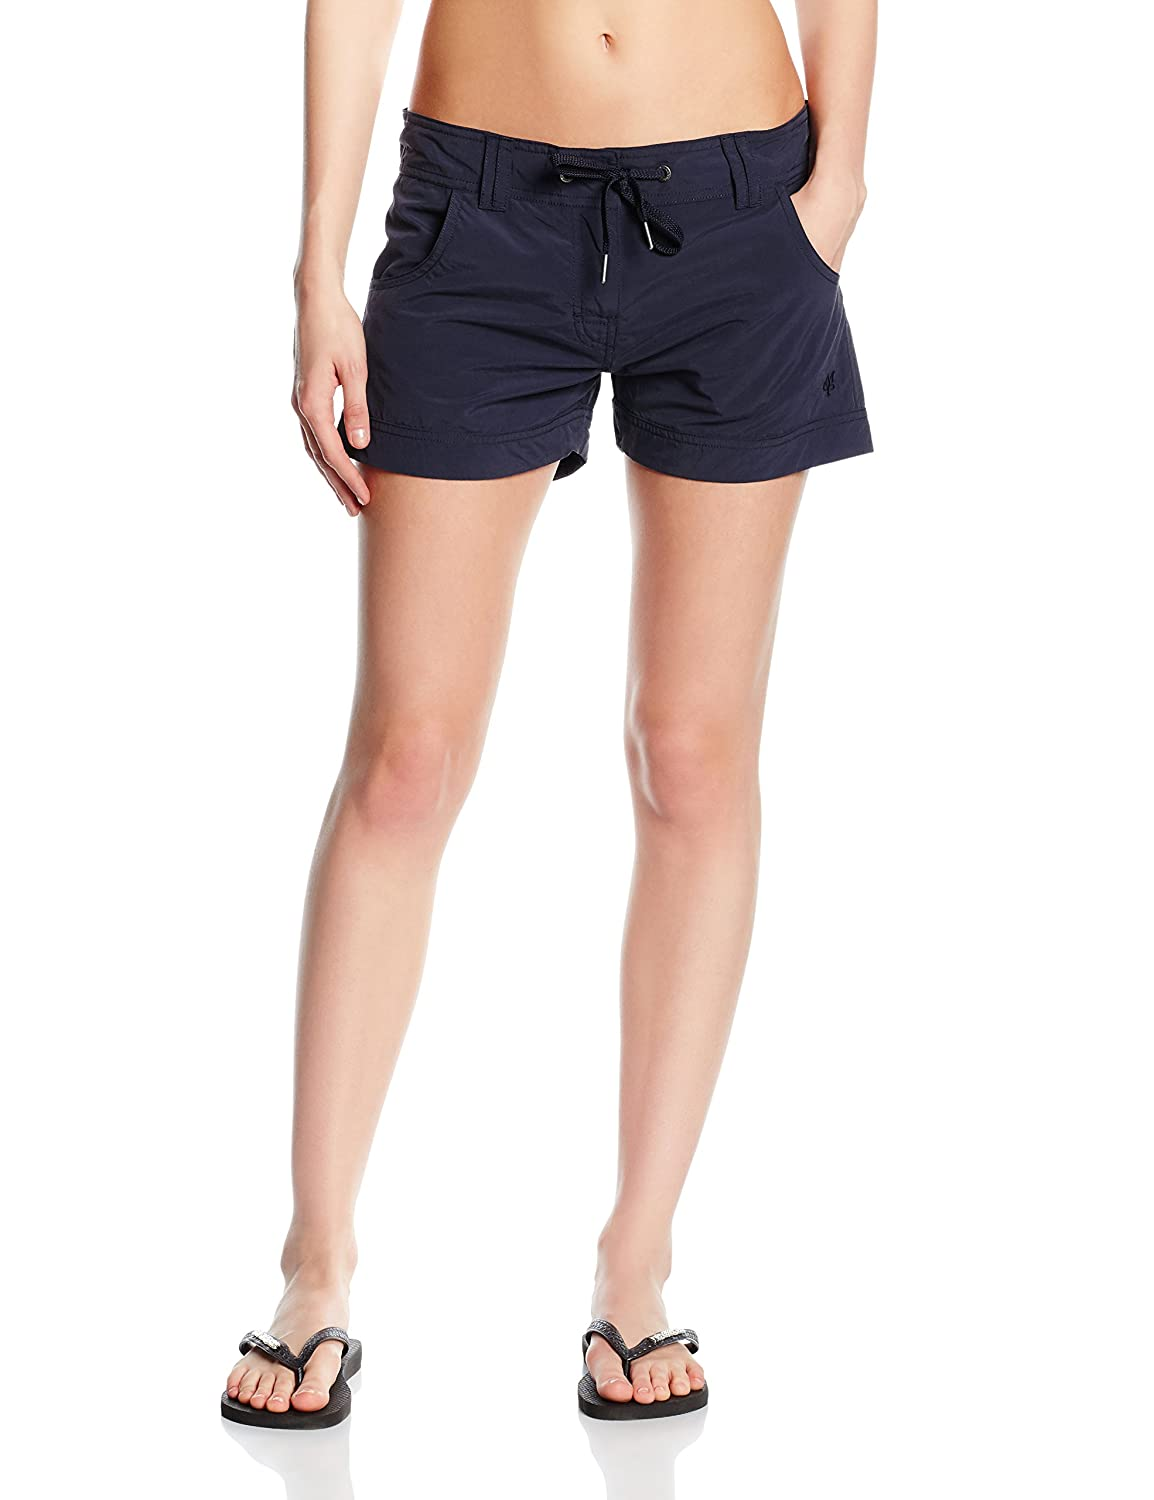 Marc O'Polo Body & Beach Damen Shorts Badeshorts 146643